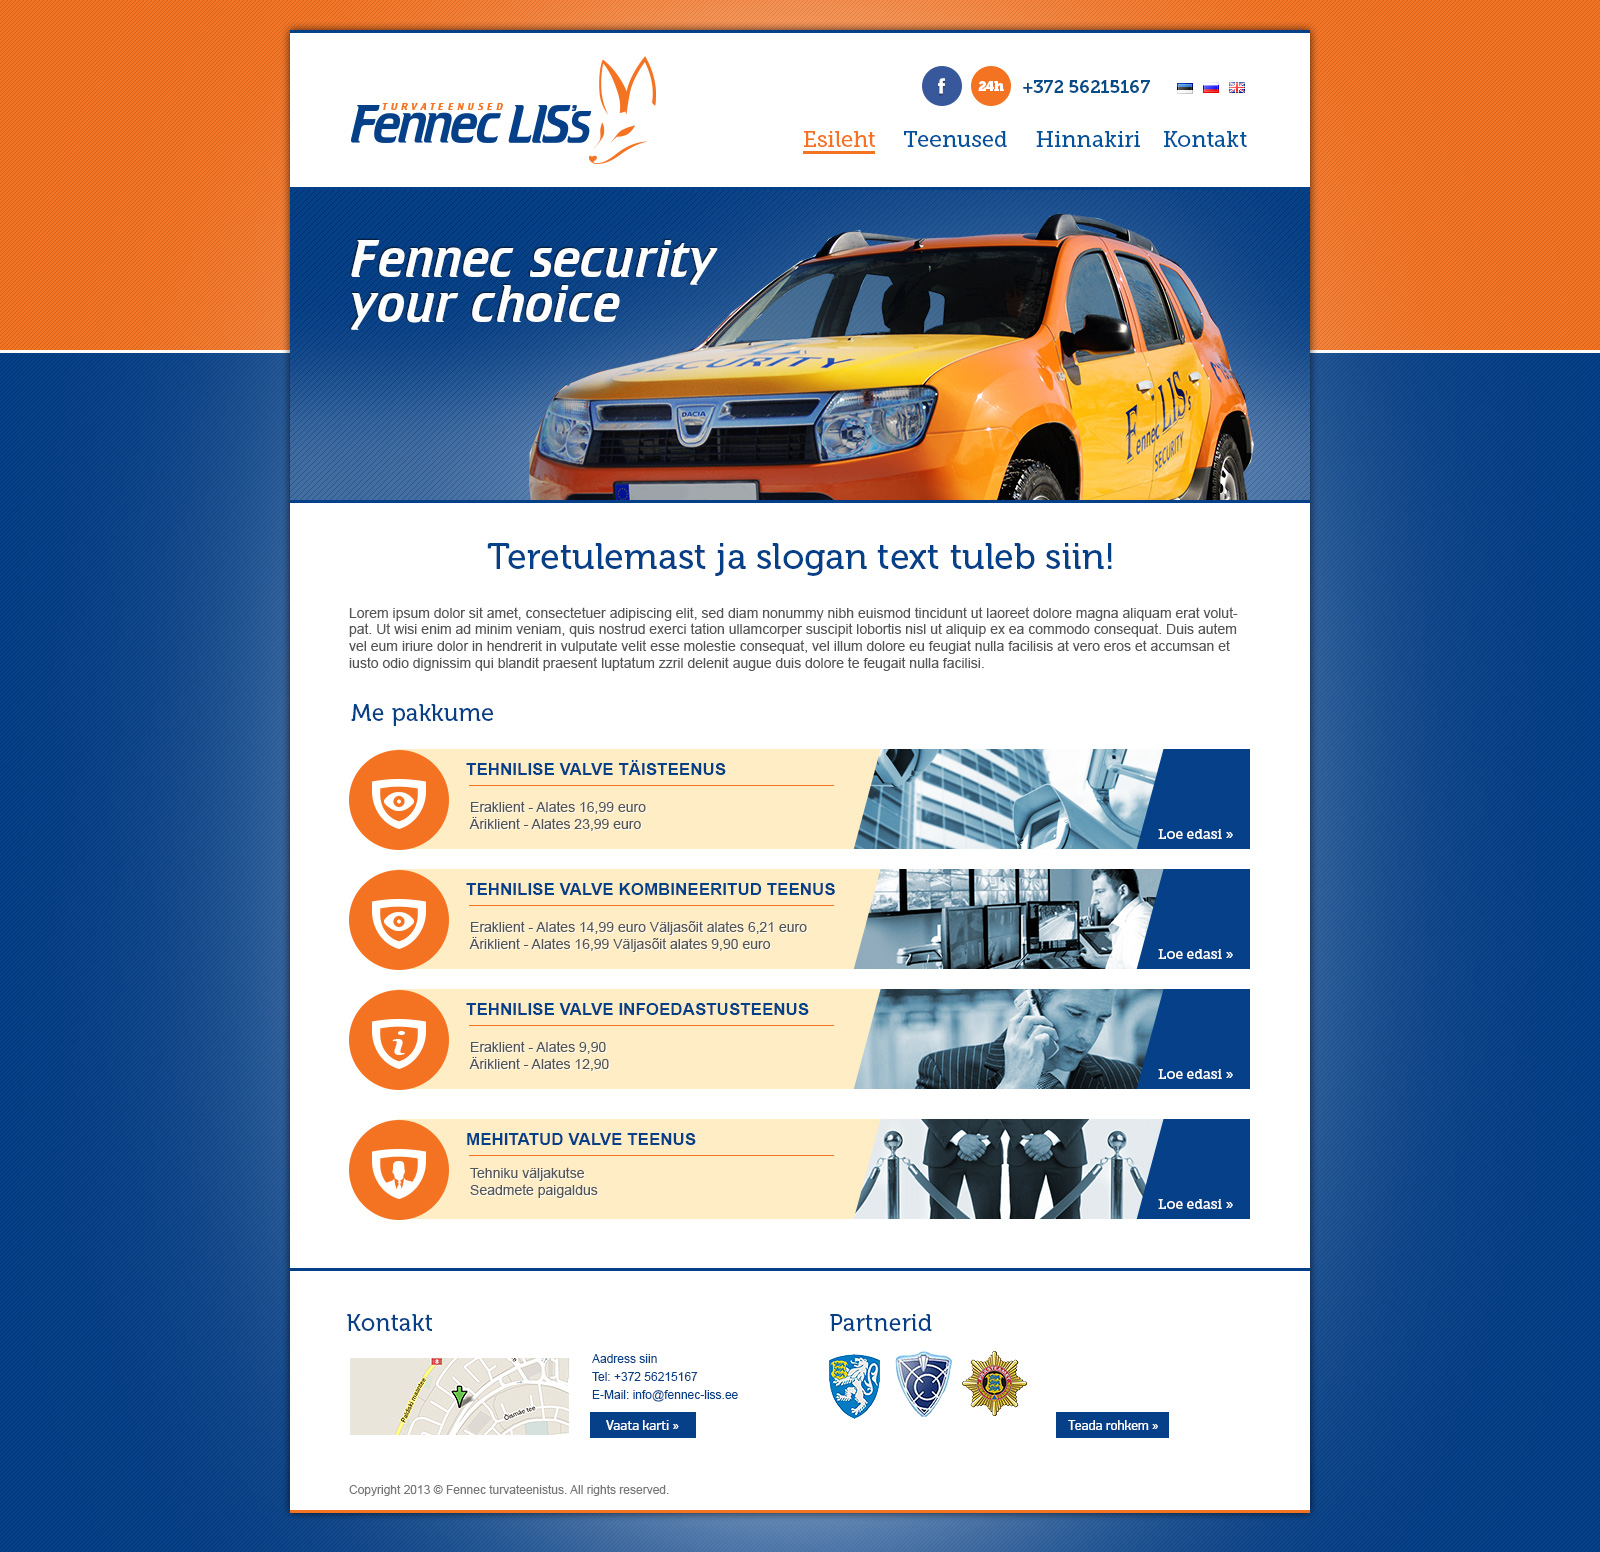 fennec liss site